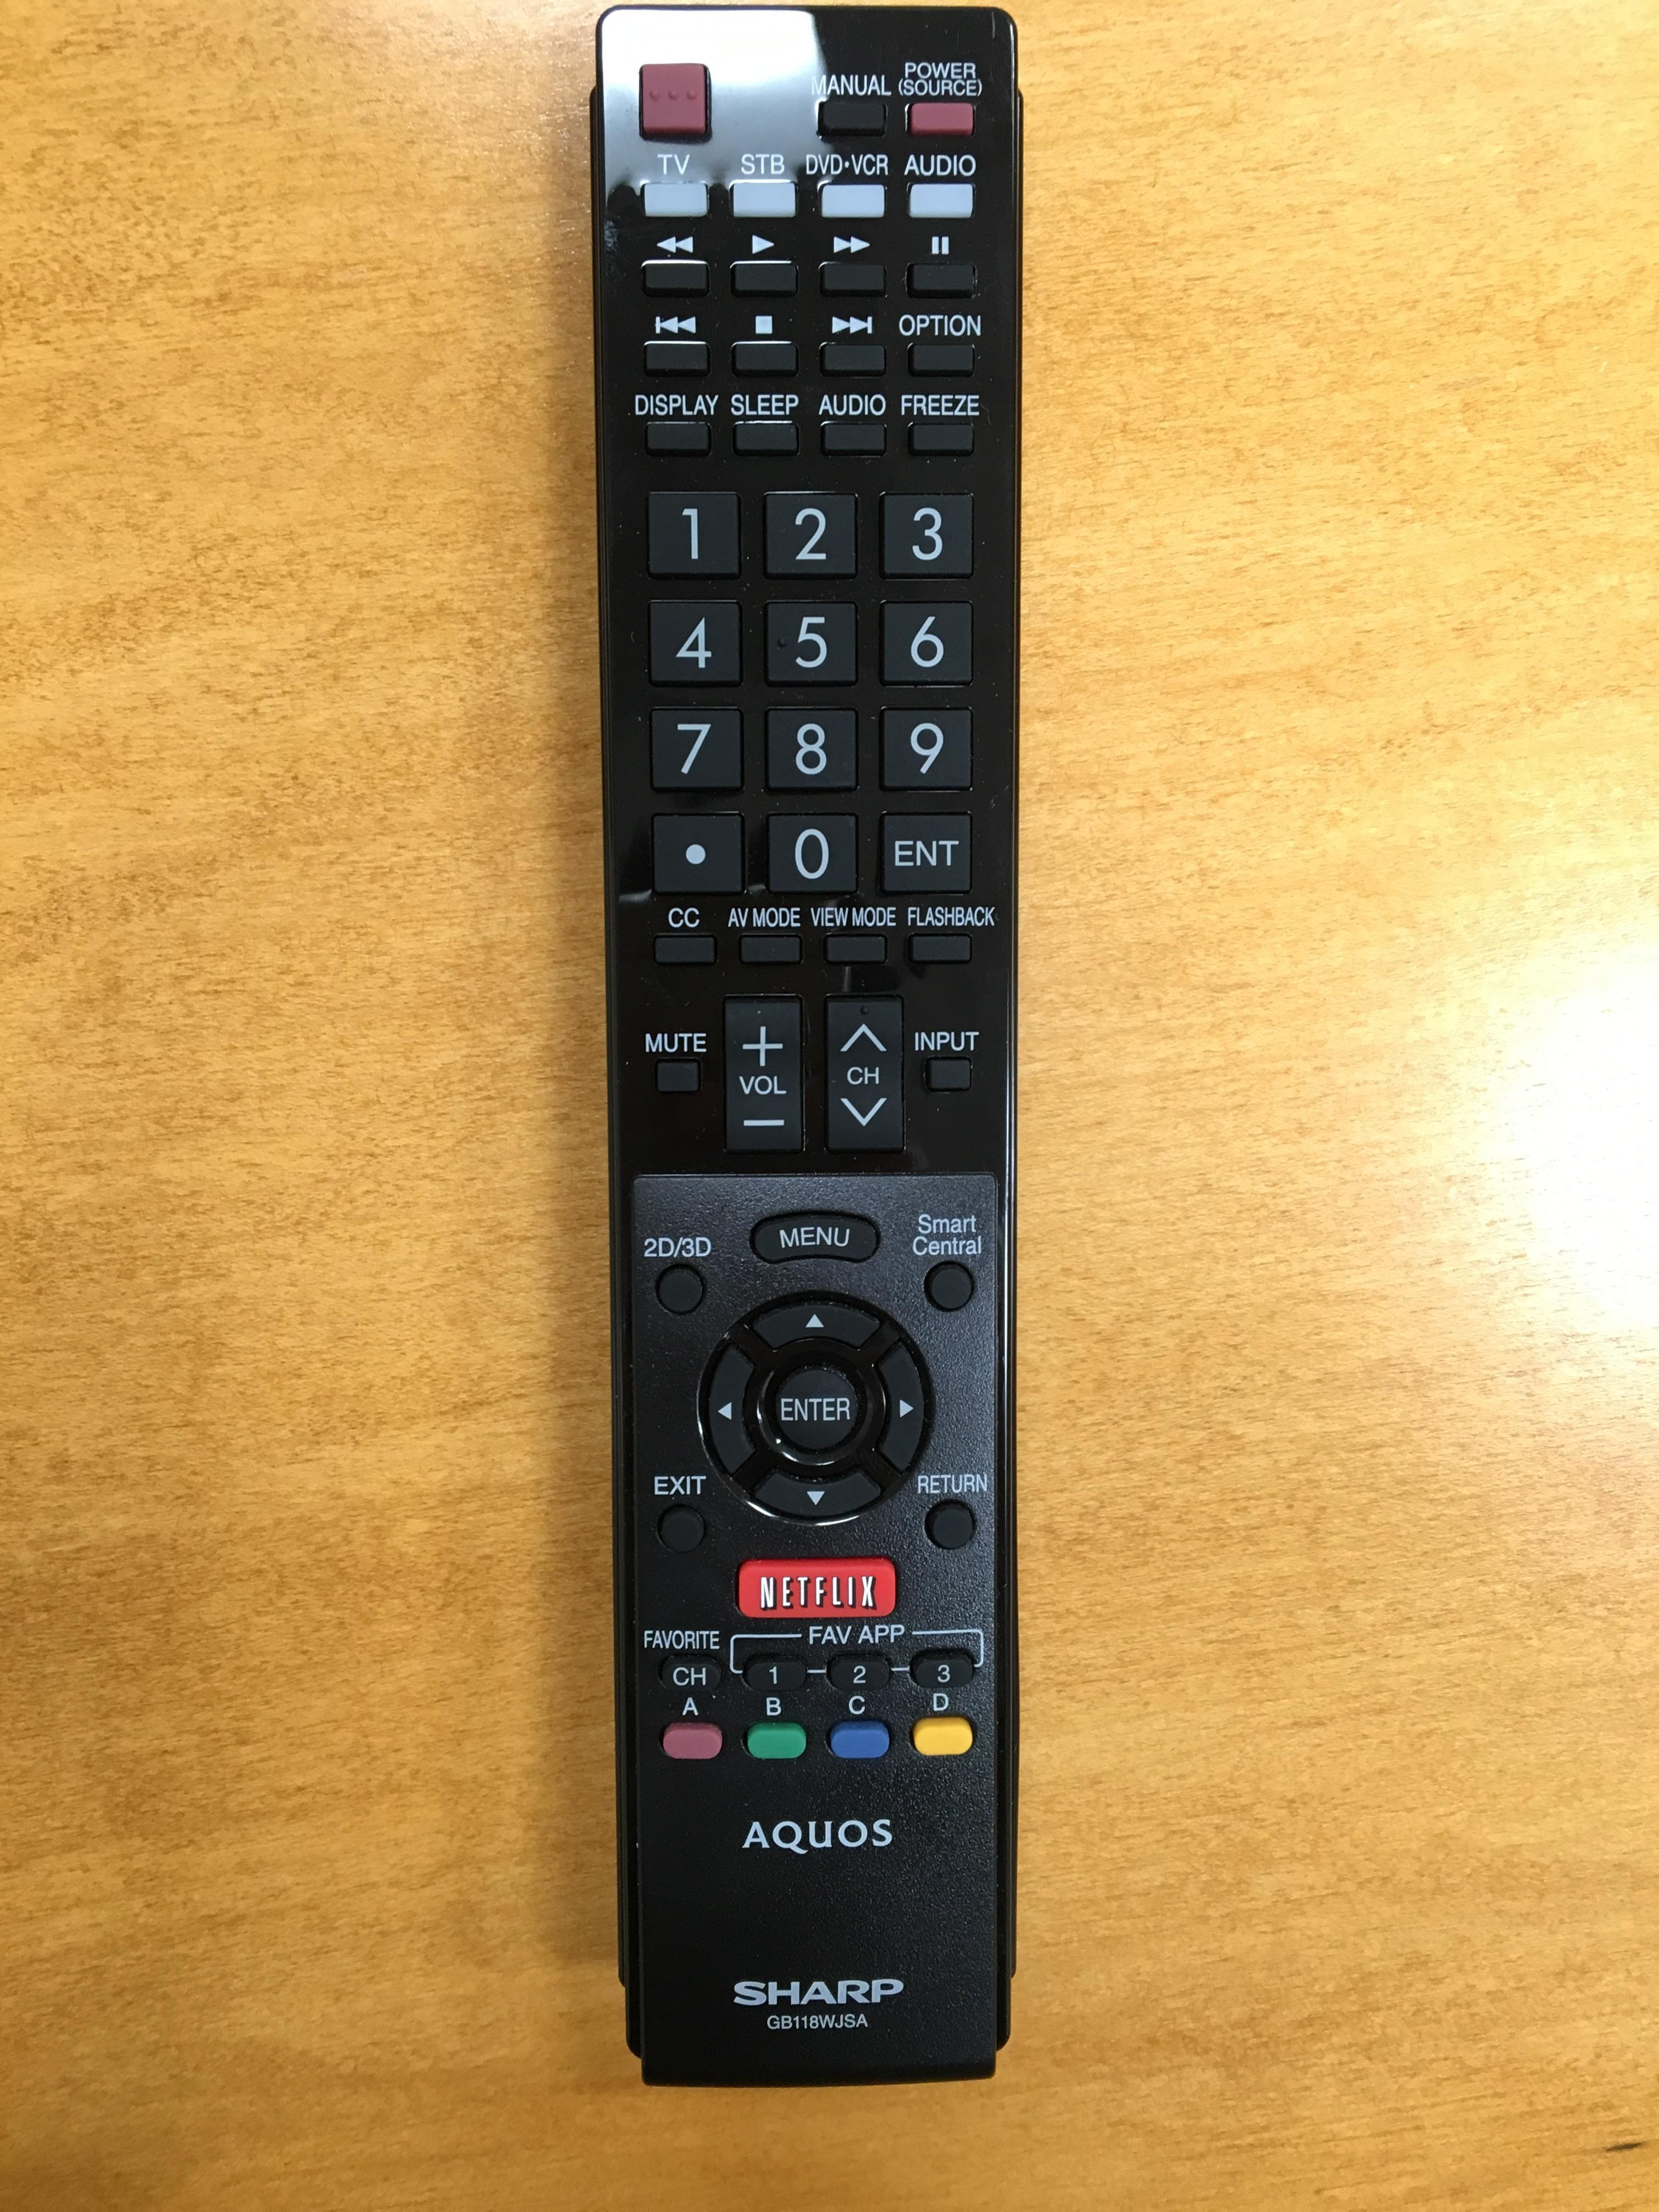 Remote control for display